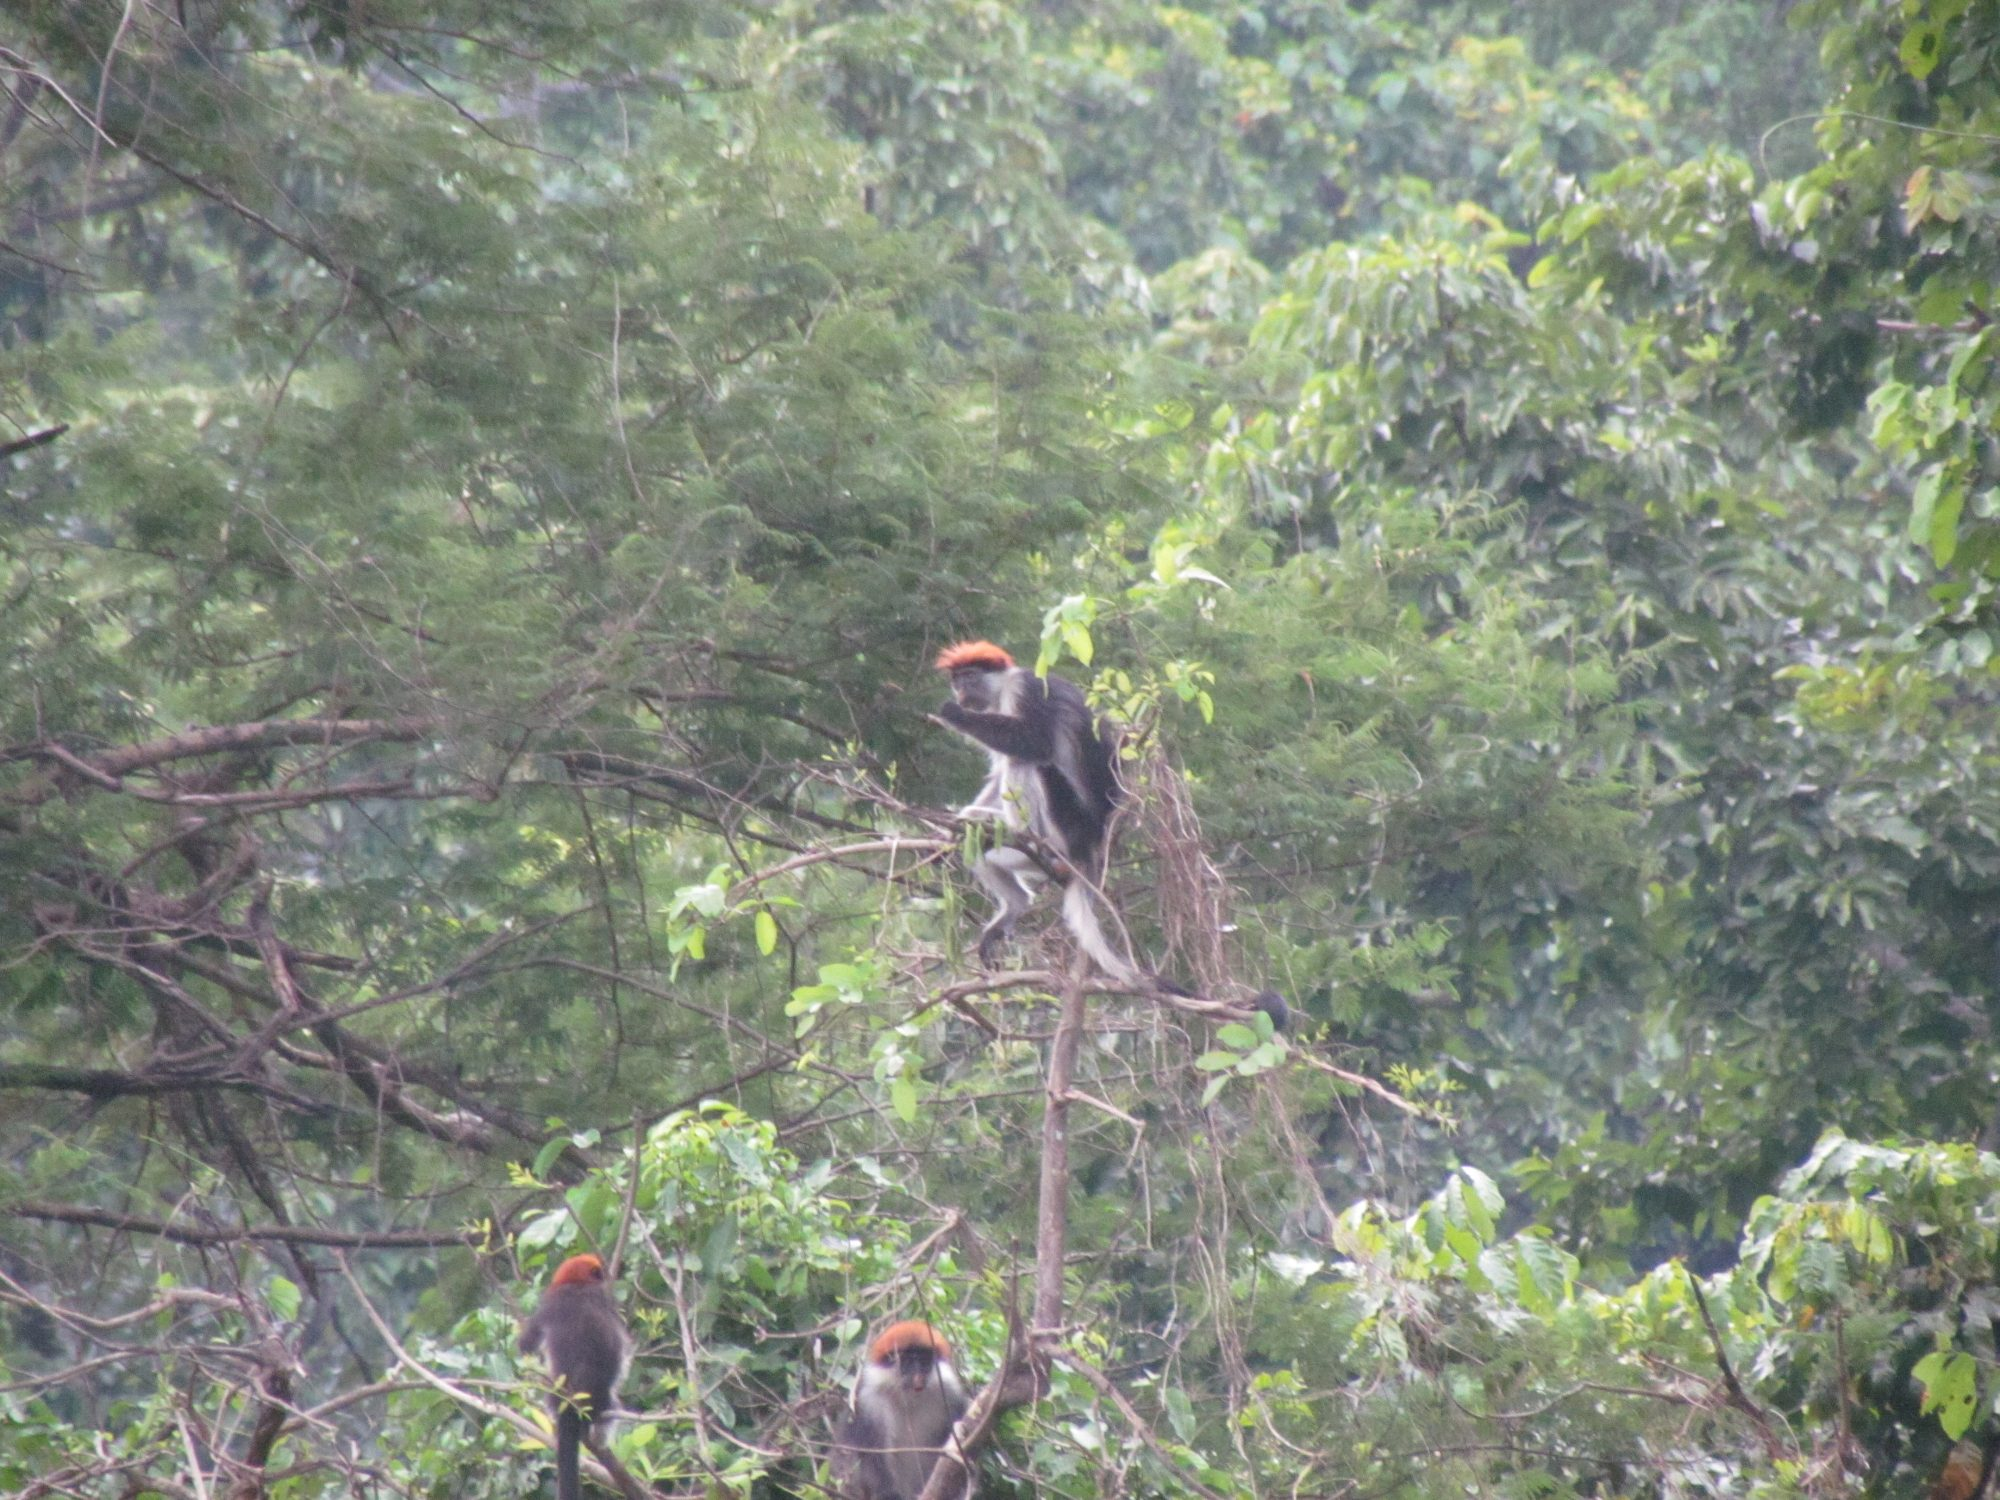 Iringa Red Colobus troop - Udzungwa Mountains